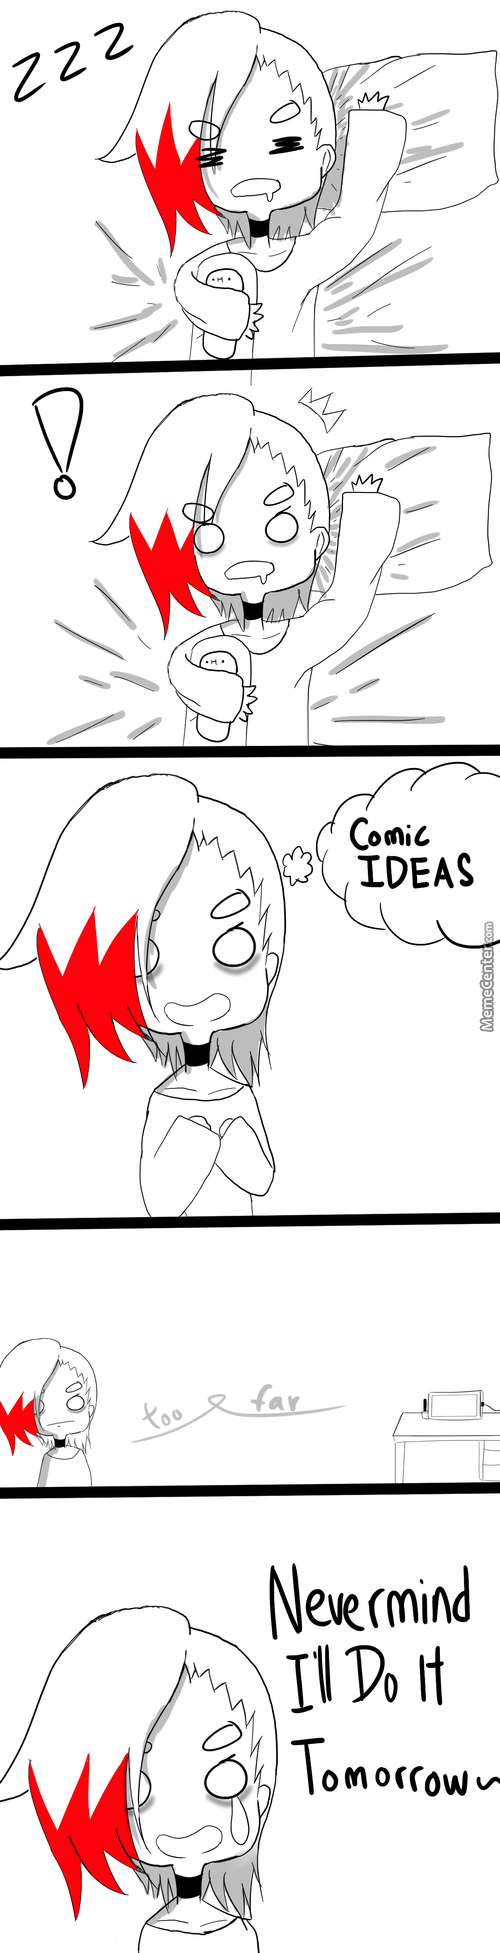 And Then I Forgot The Comic Idea By Tomorrow